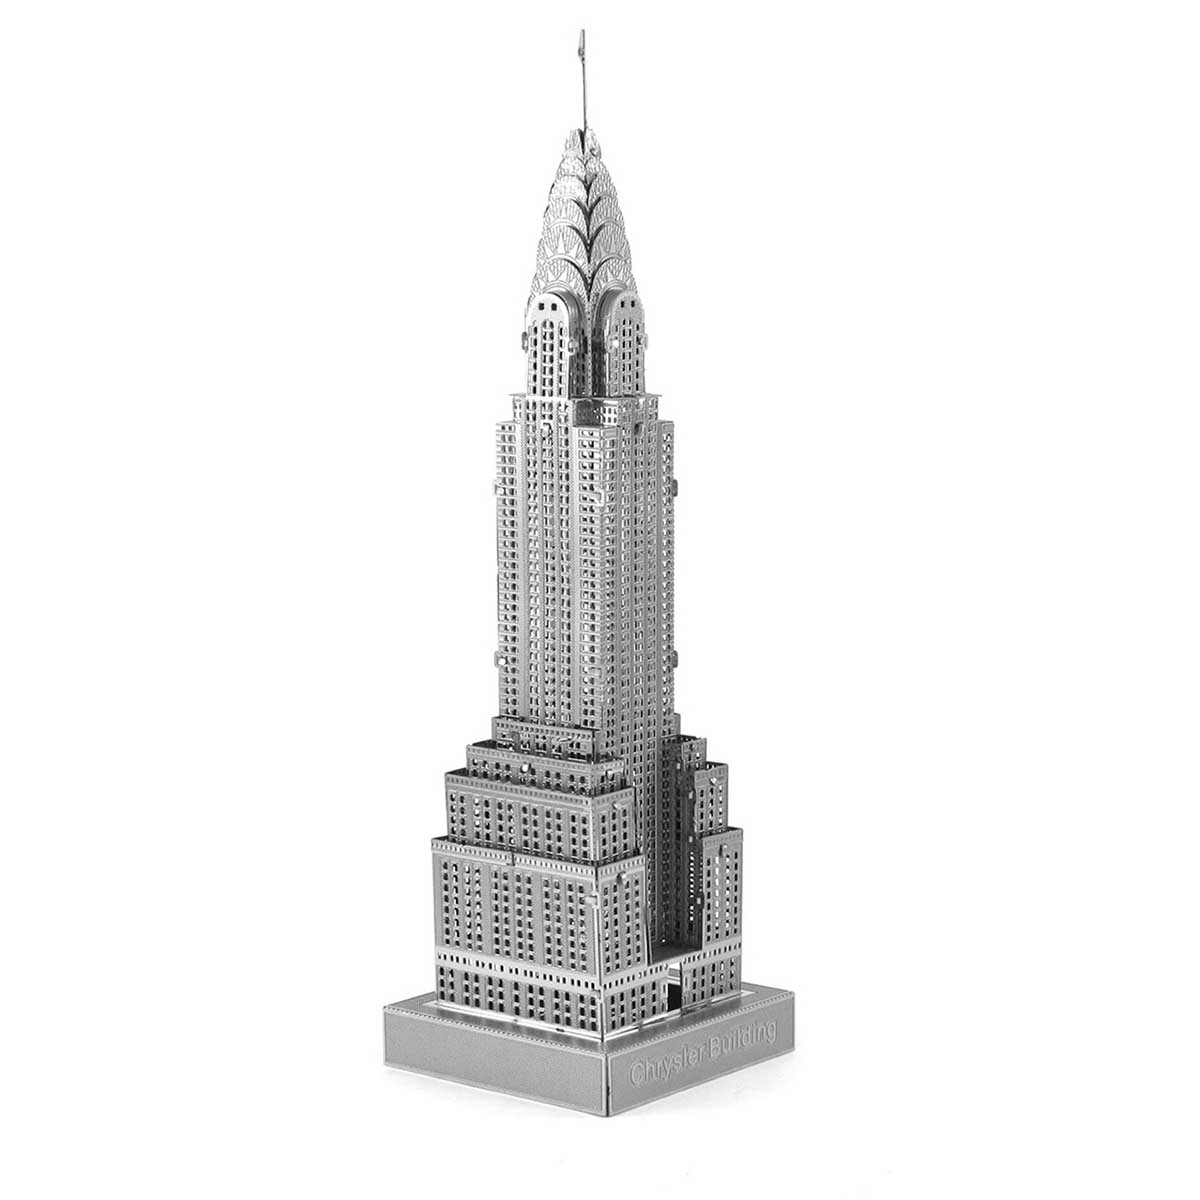 Chrysler building Landmarks / Monuments Metal Puzzles